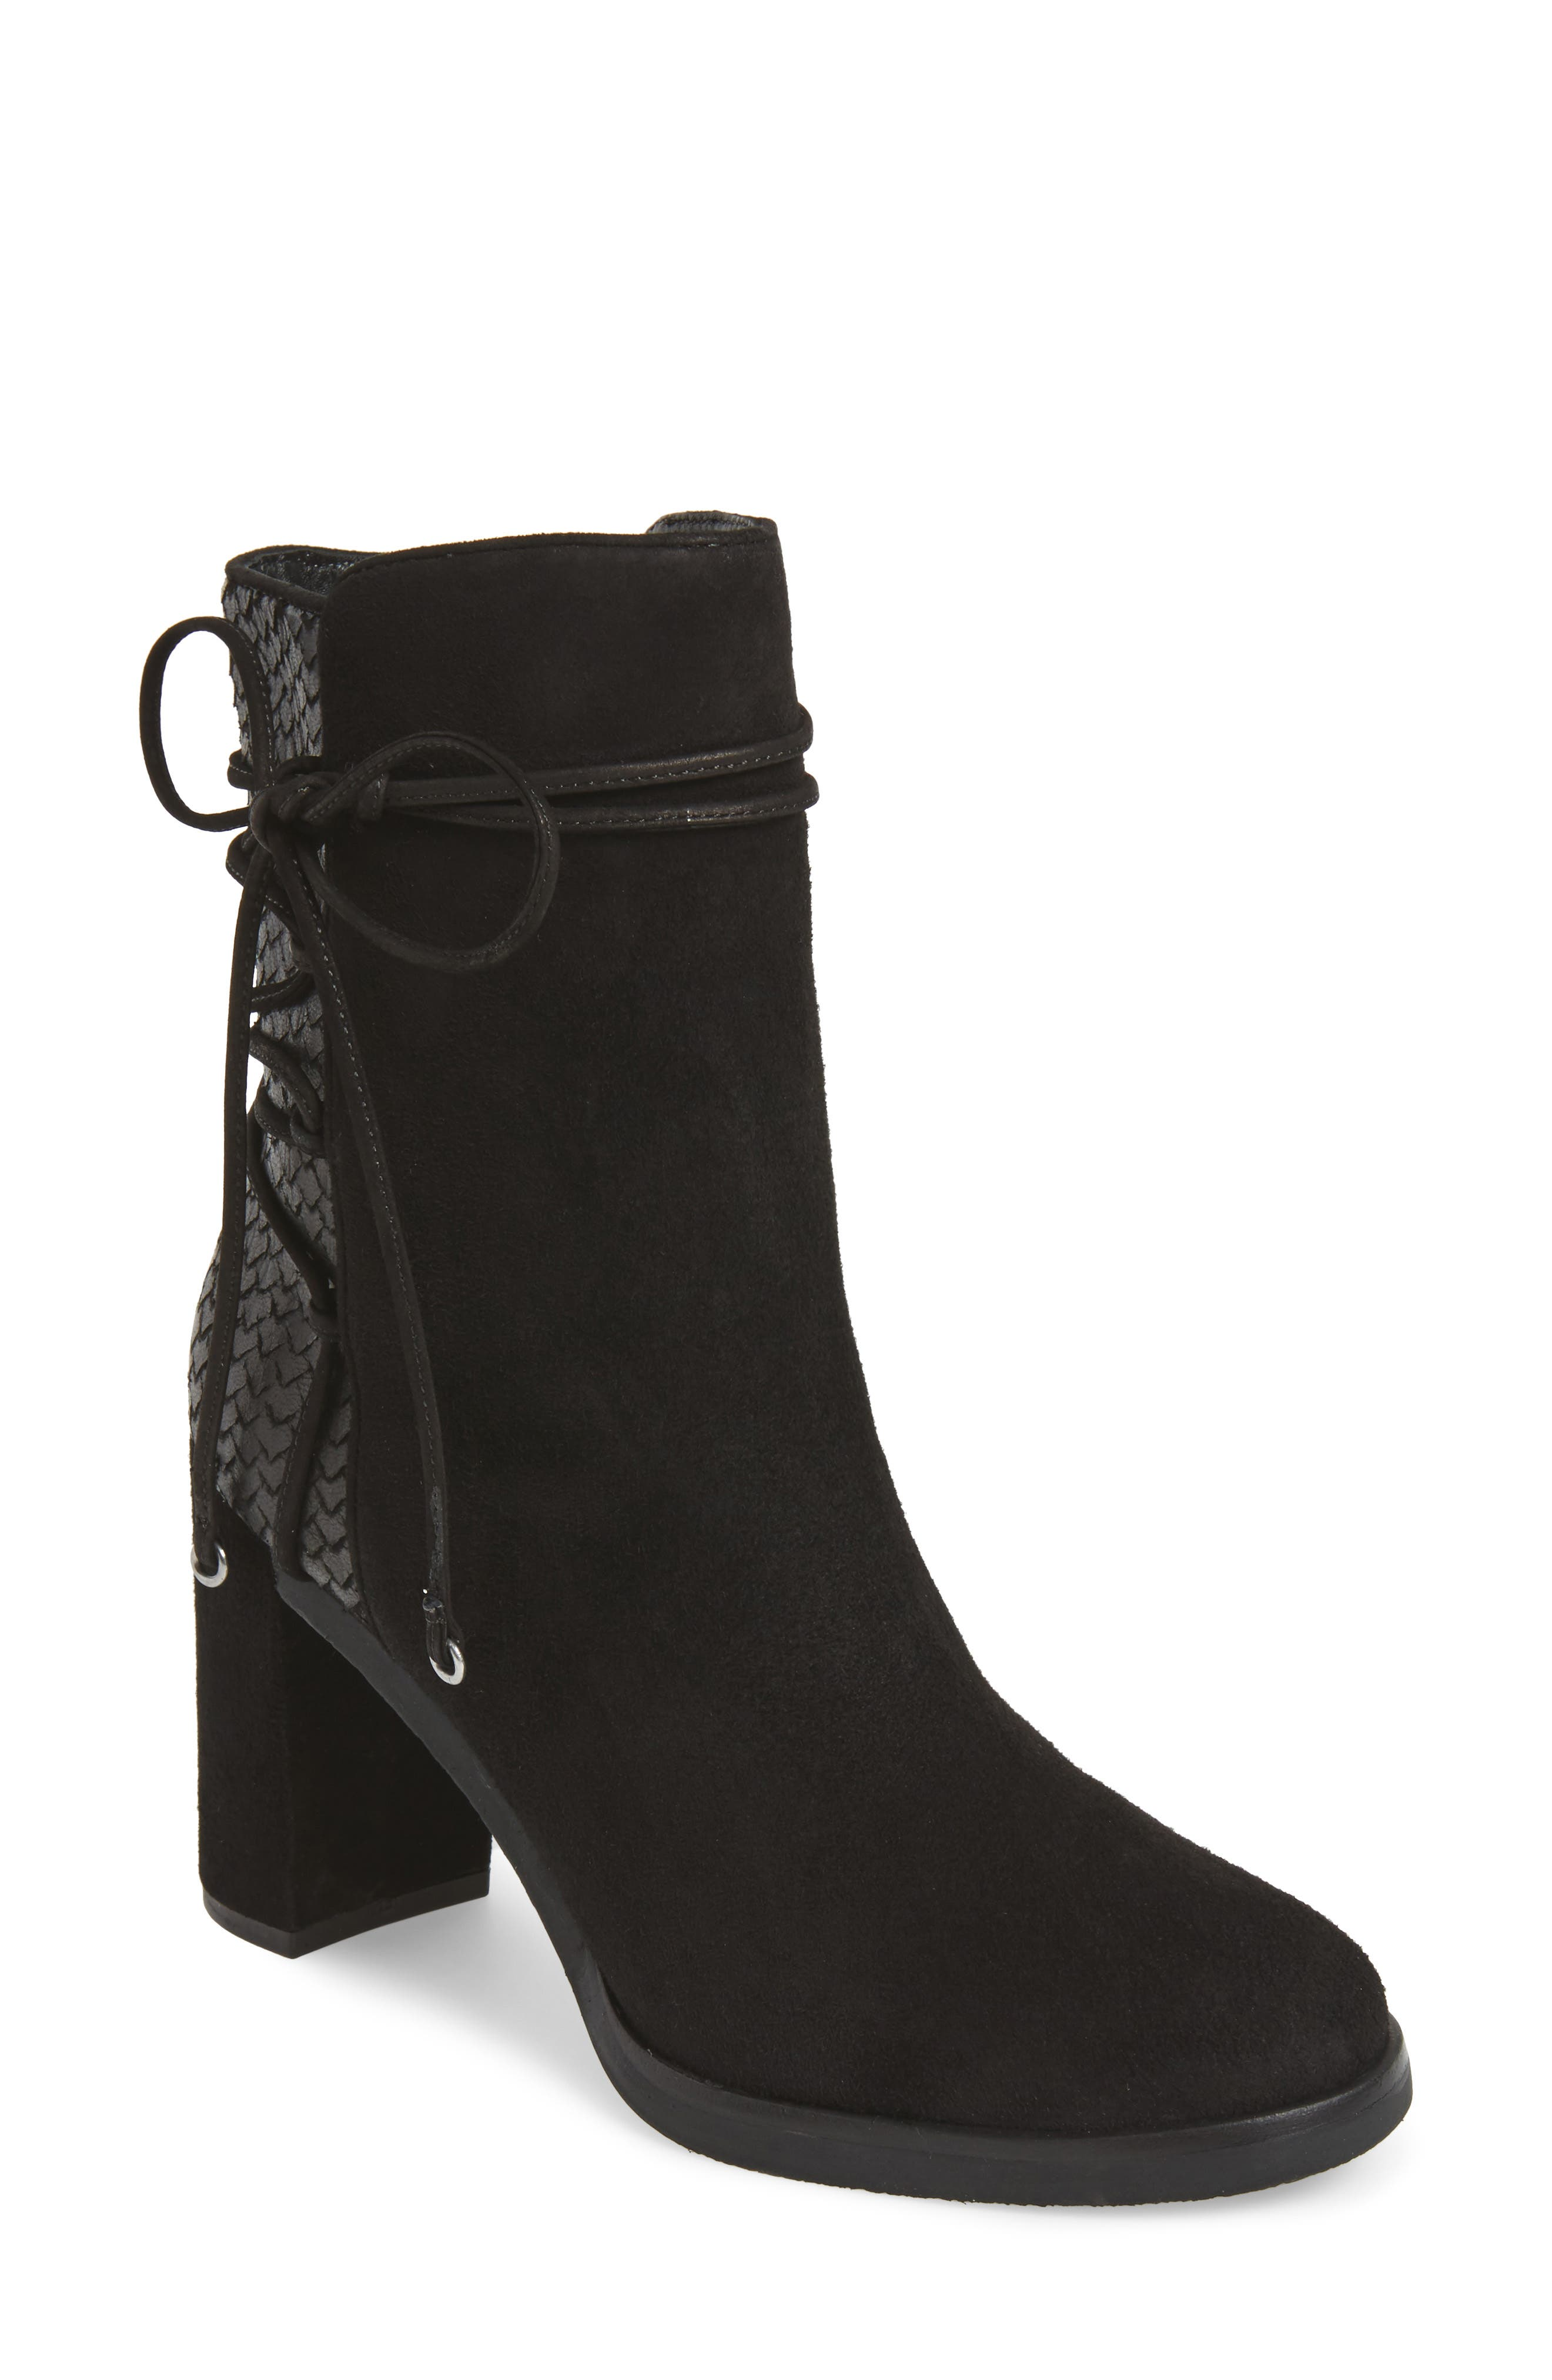 Alternate Image 1 Selected - Johnston & Murphy Adley Ankle Wrap Boot (Women)